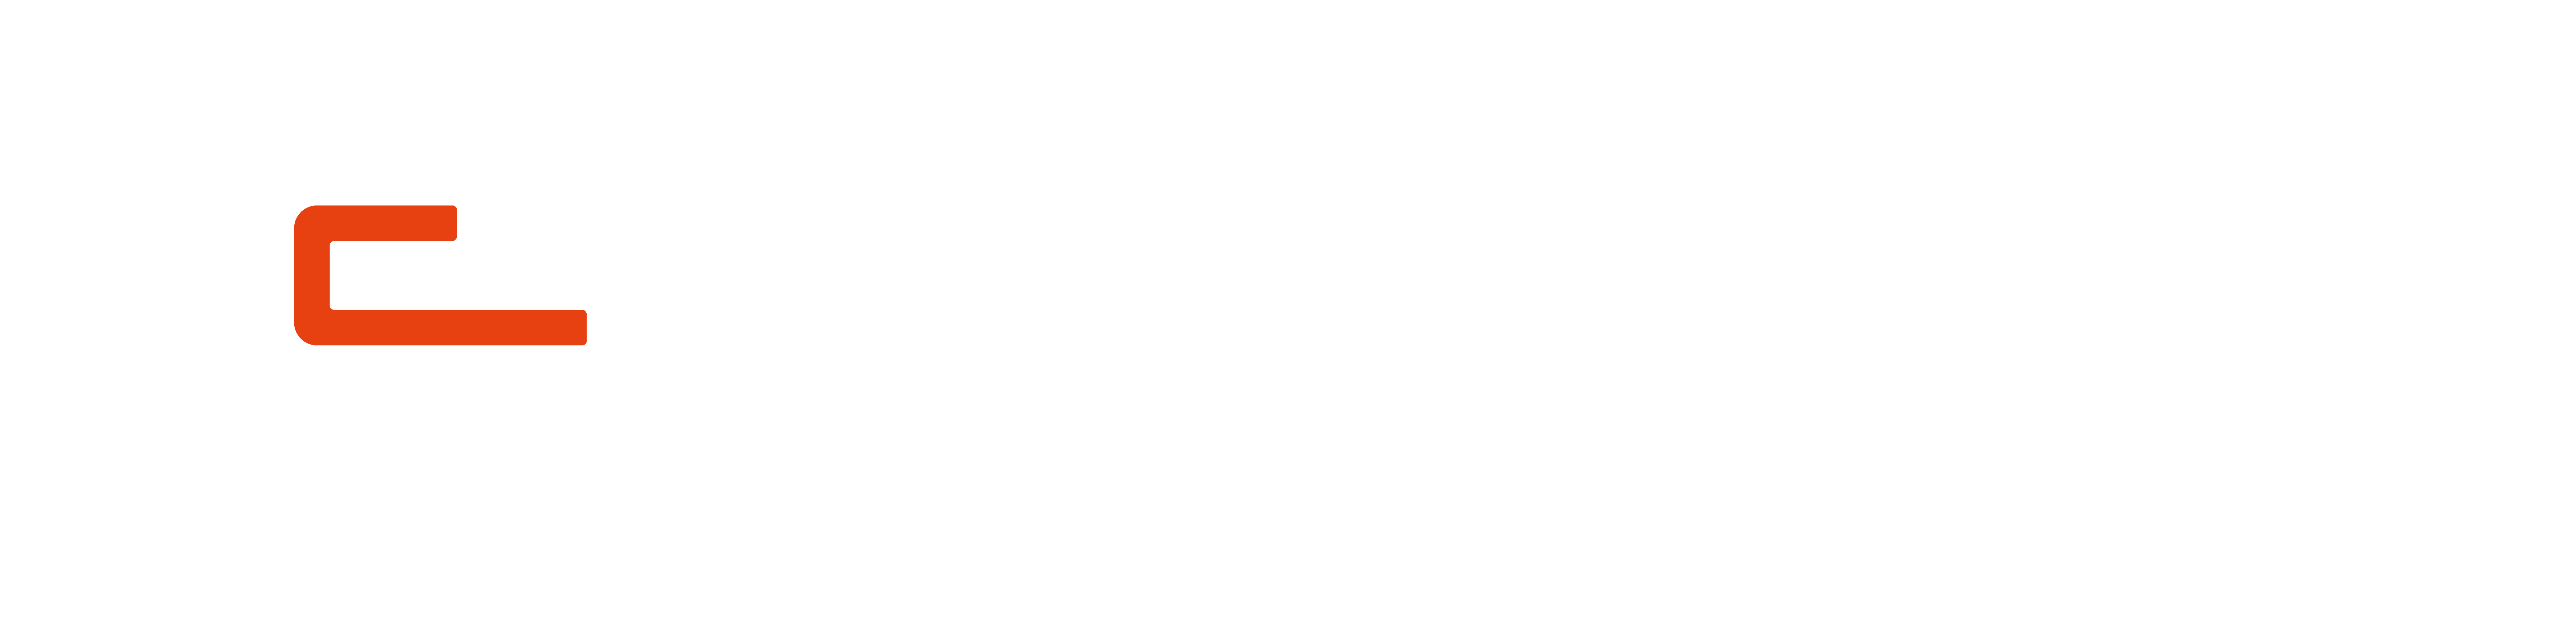 Metalform - Manufacturing Production Partner and Sheetmetal Fabrication Experts